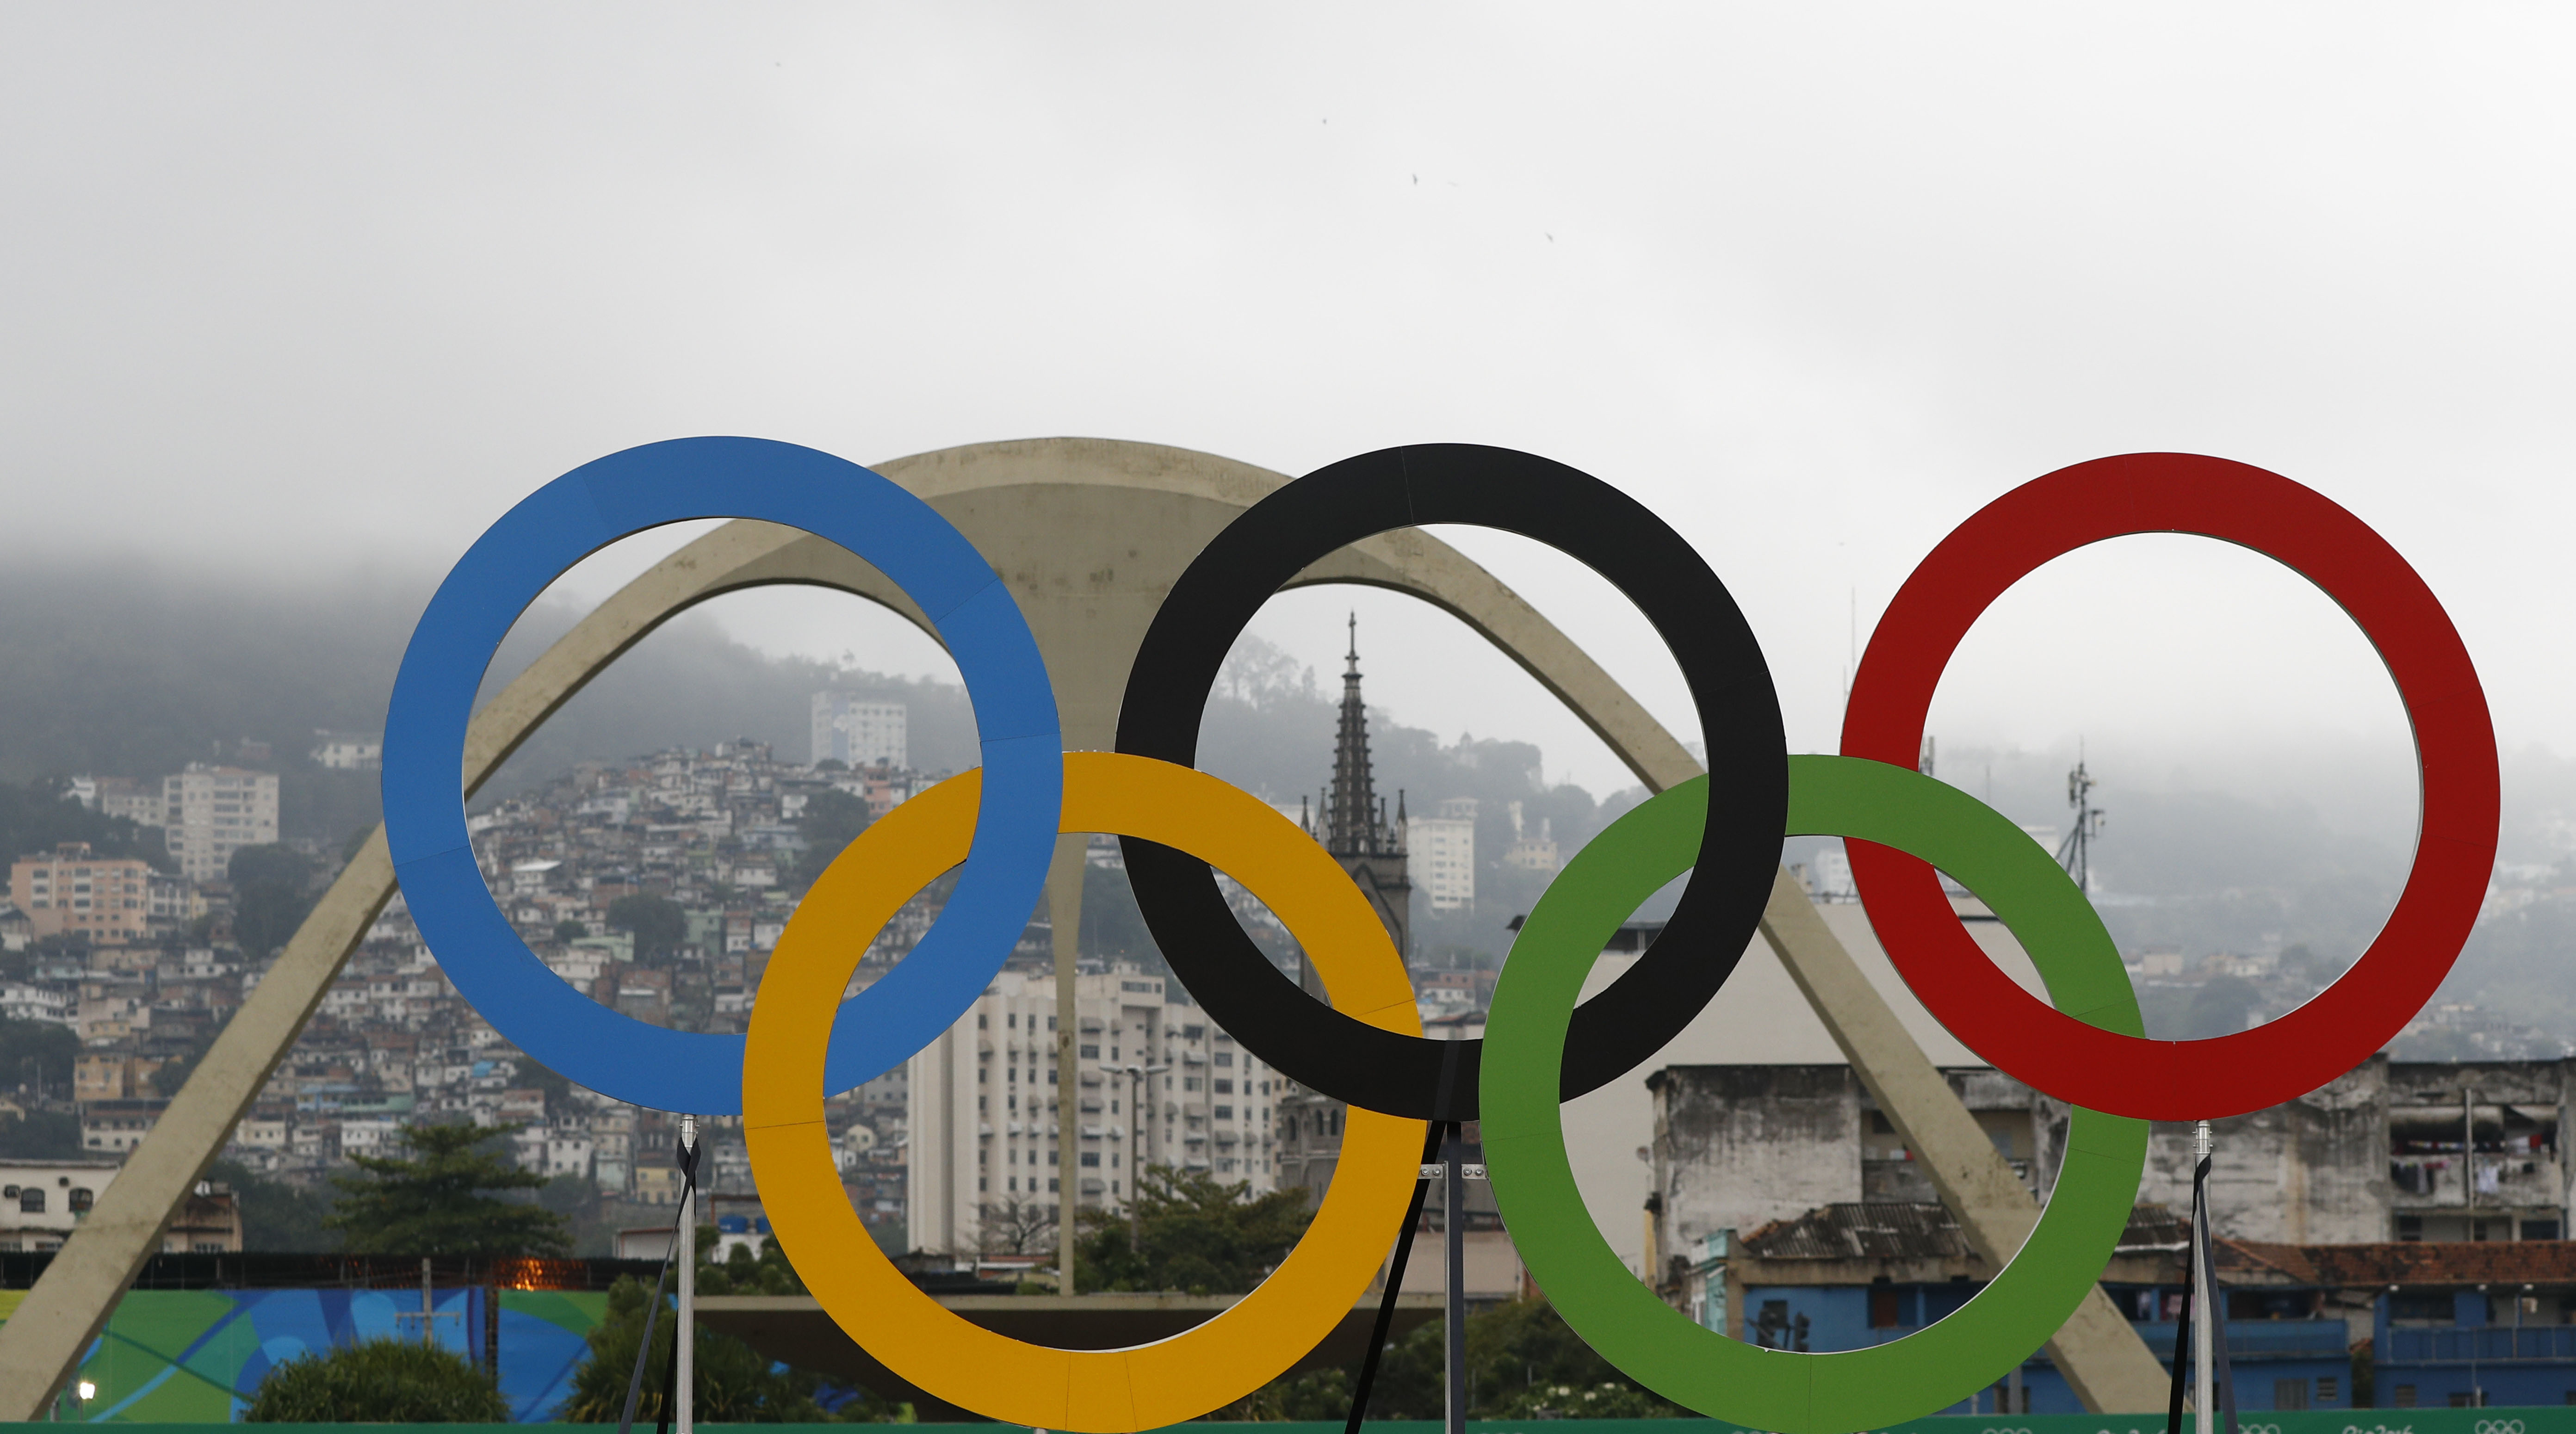 2020 Olympics: Tokyo proposing moving venue | SI.com Olympic Rings 2020